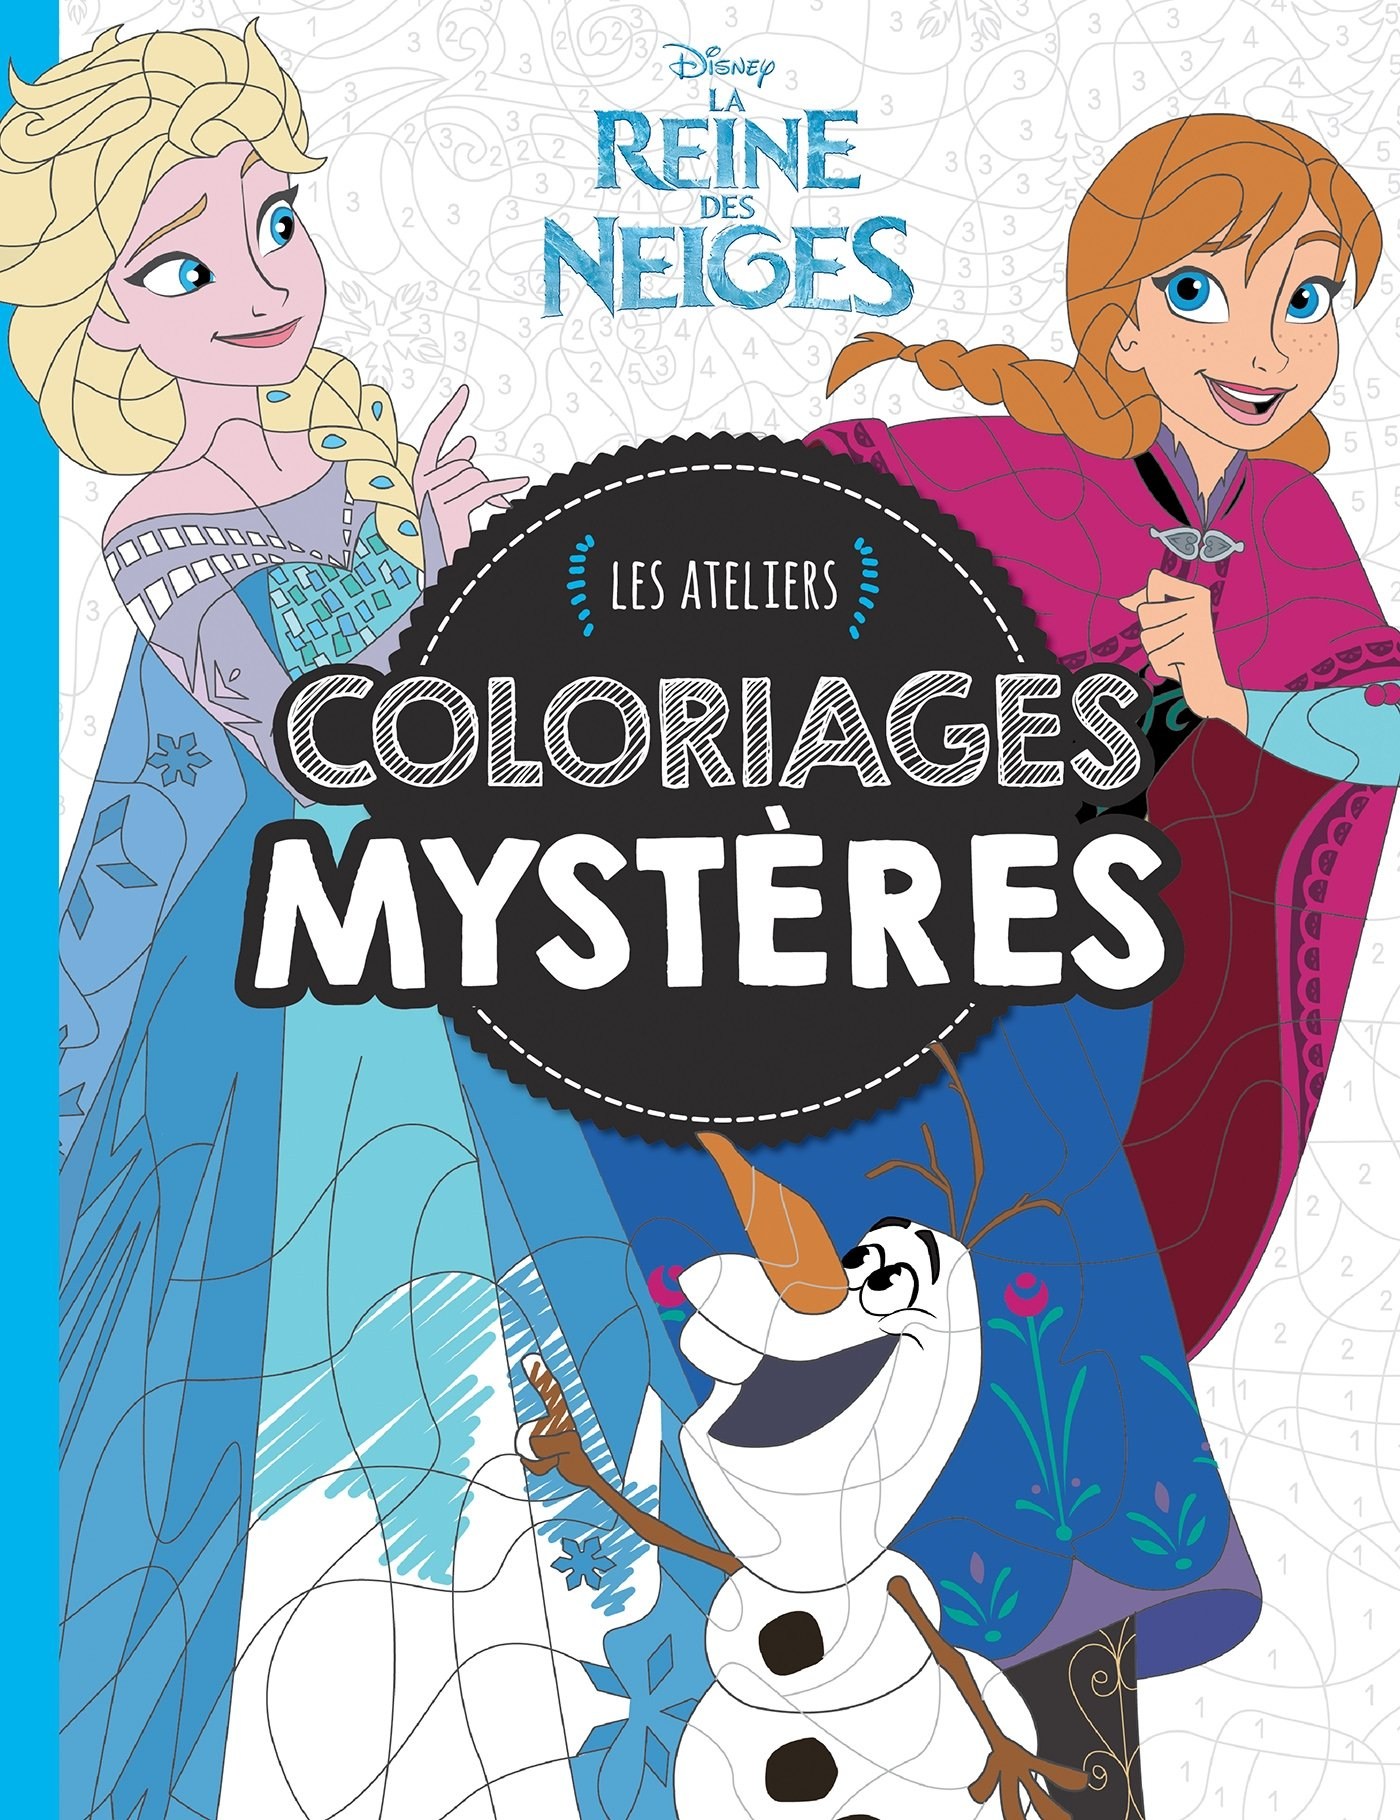 Reine Des Neiges Coloriages Mysteres Ateliers Disney Hjd